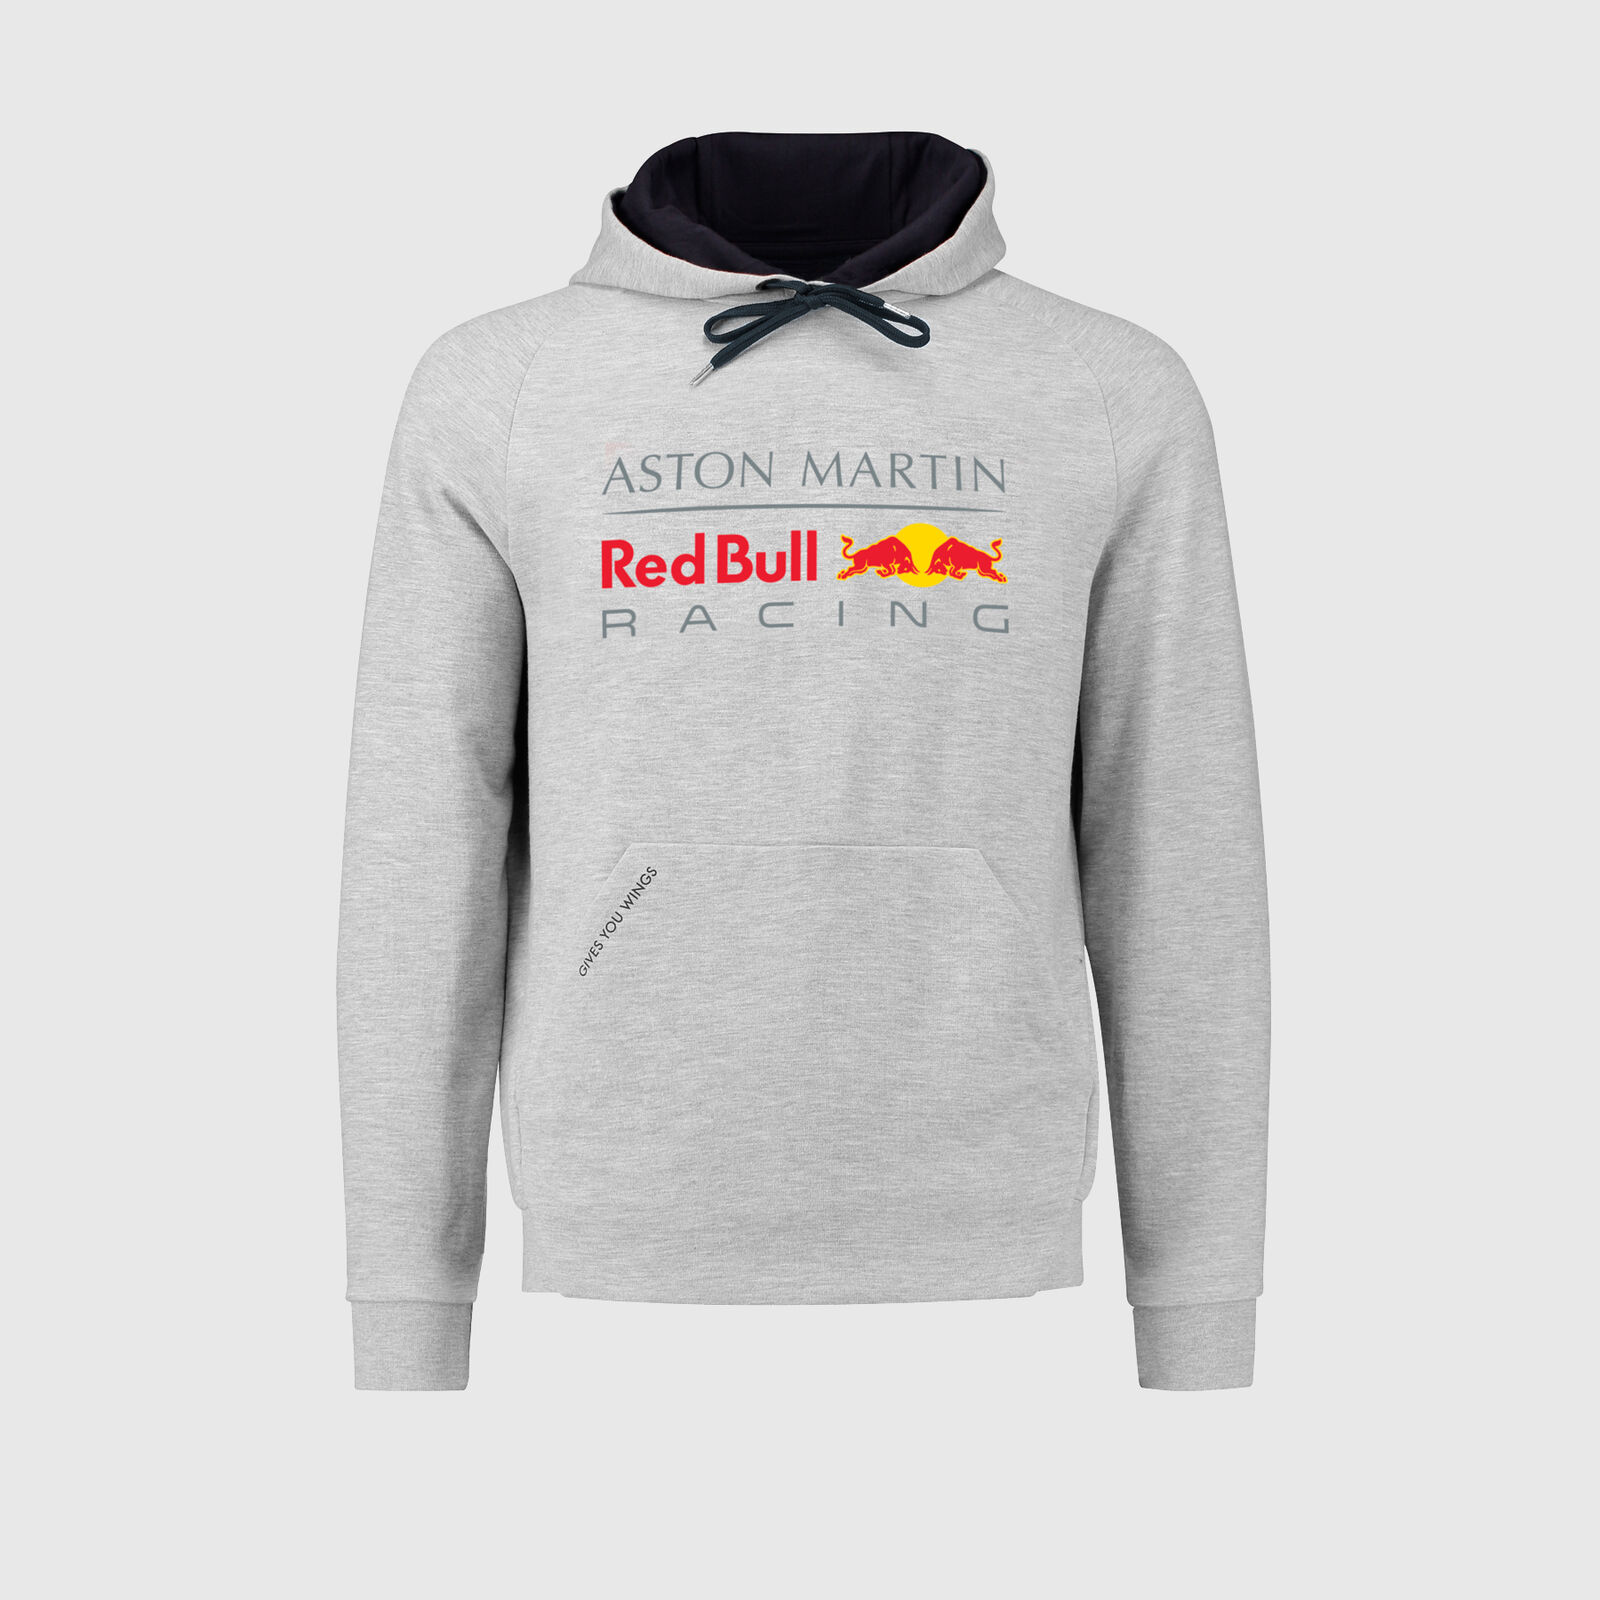 Logo Hoodie Aston Martin Red Bull Racing Fuel For Fans